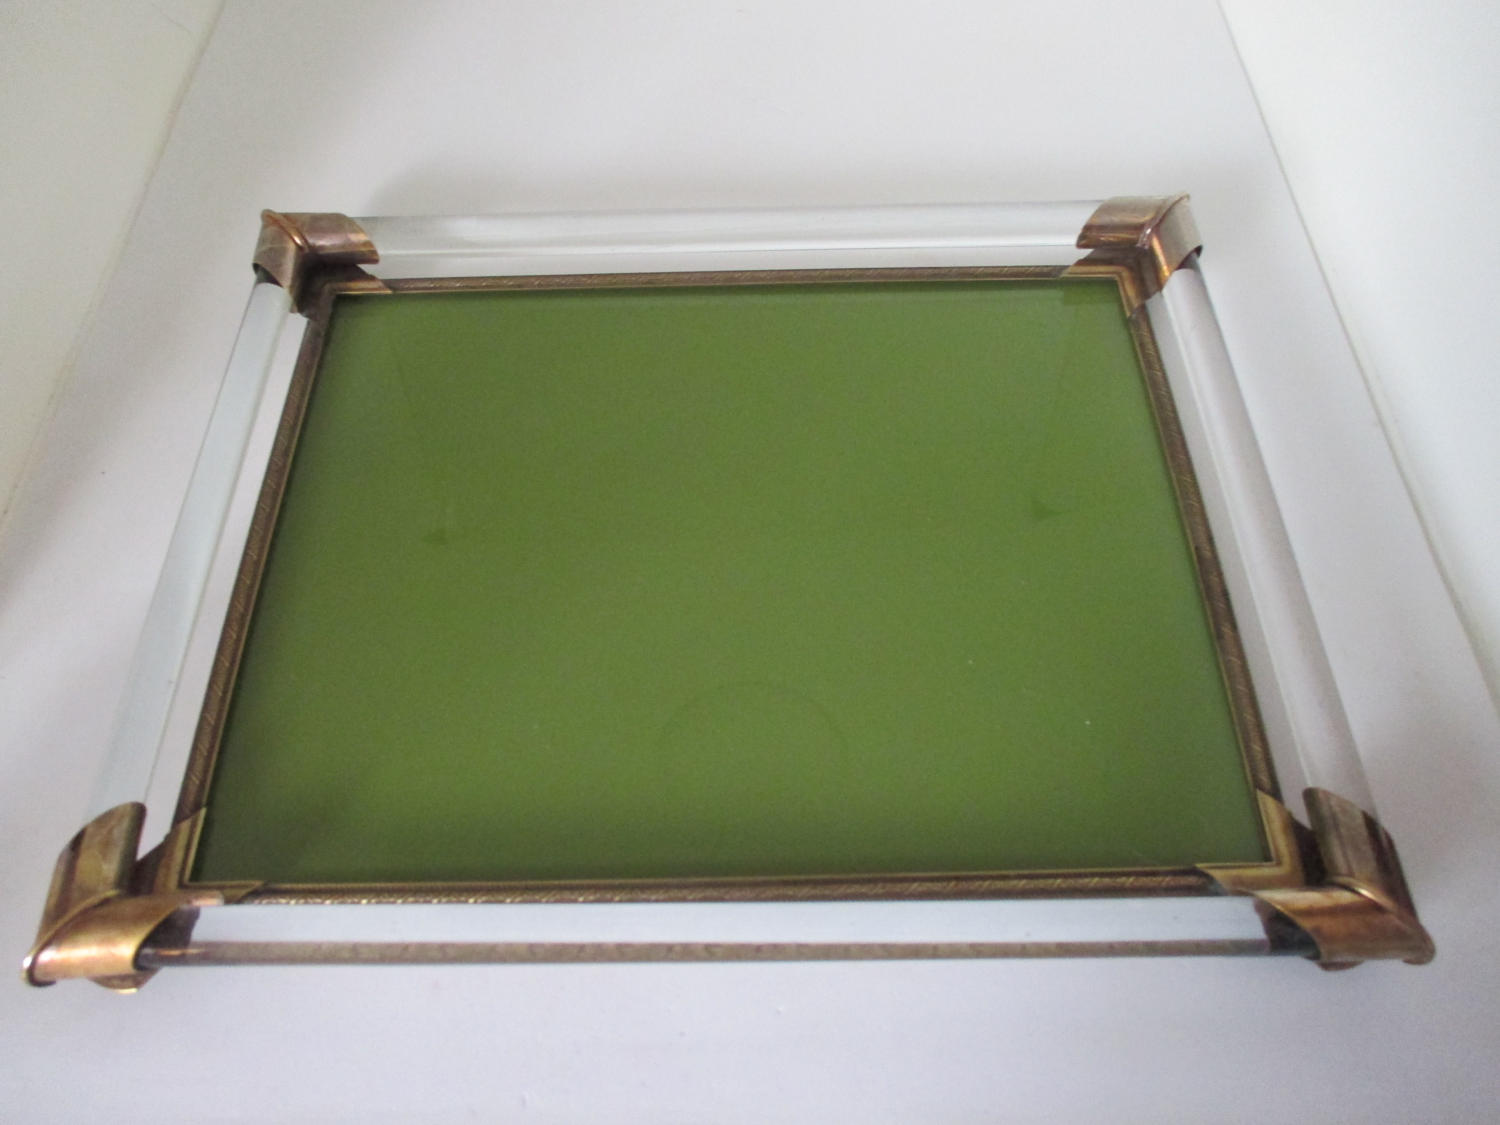 Vintage Dresser Vanity Tray Olive Green glass with glass rods arund edges  brass corners Collectible display - Vintage Dresser Vanity Tray Olive Green Glass With Glass Rods Arund